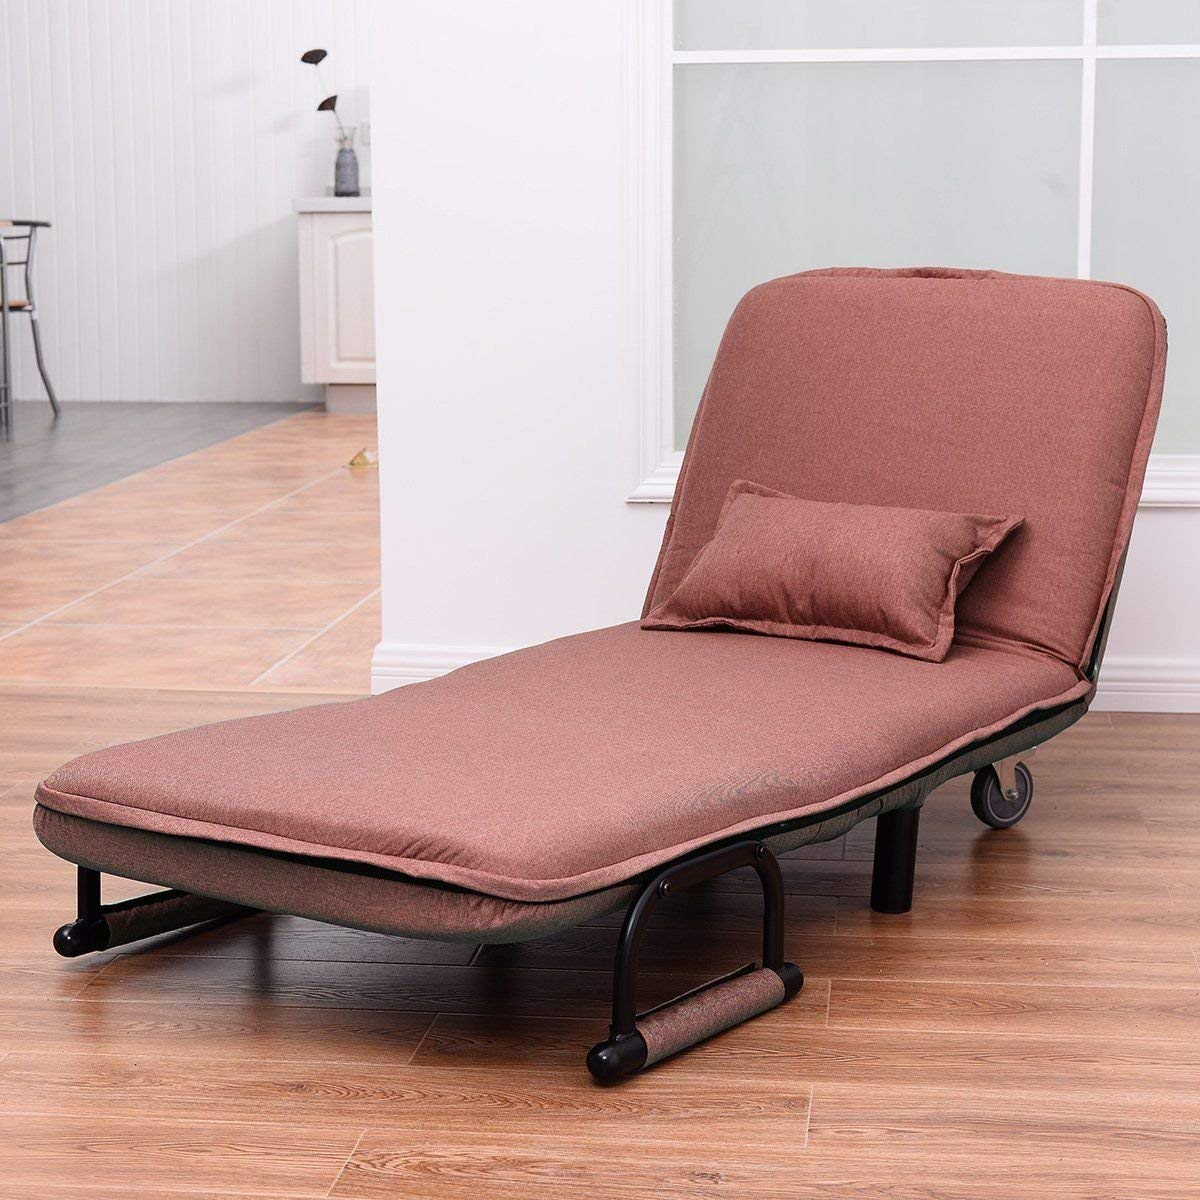 Picture of: Cheap Convertible Sofa Chair Bed Find Convertible Sofa Chair Bed Deals On Line At Alibaba Com